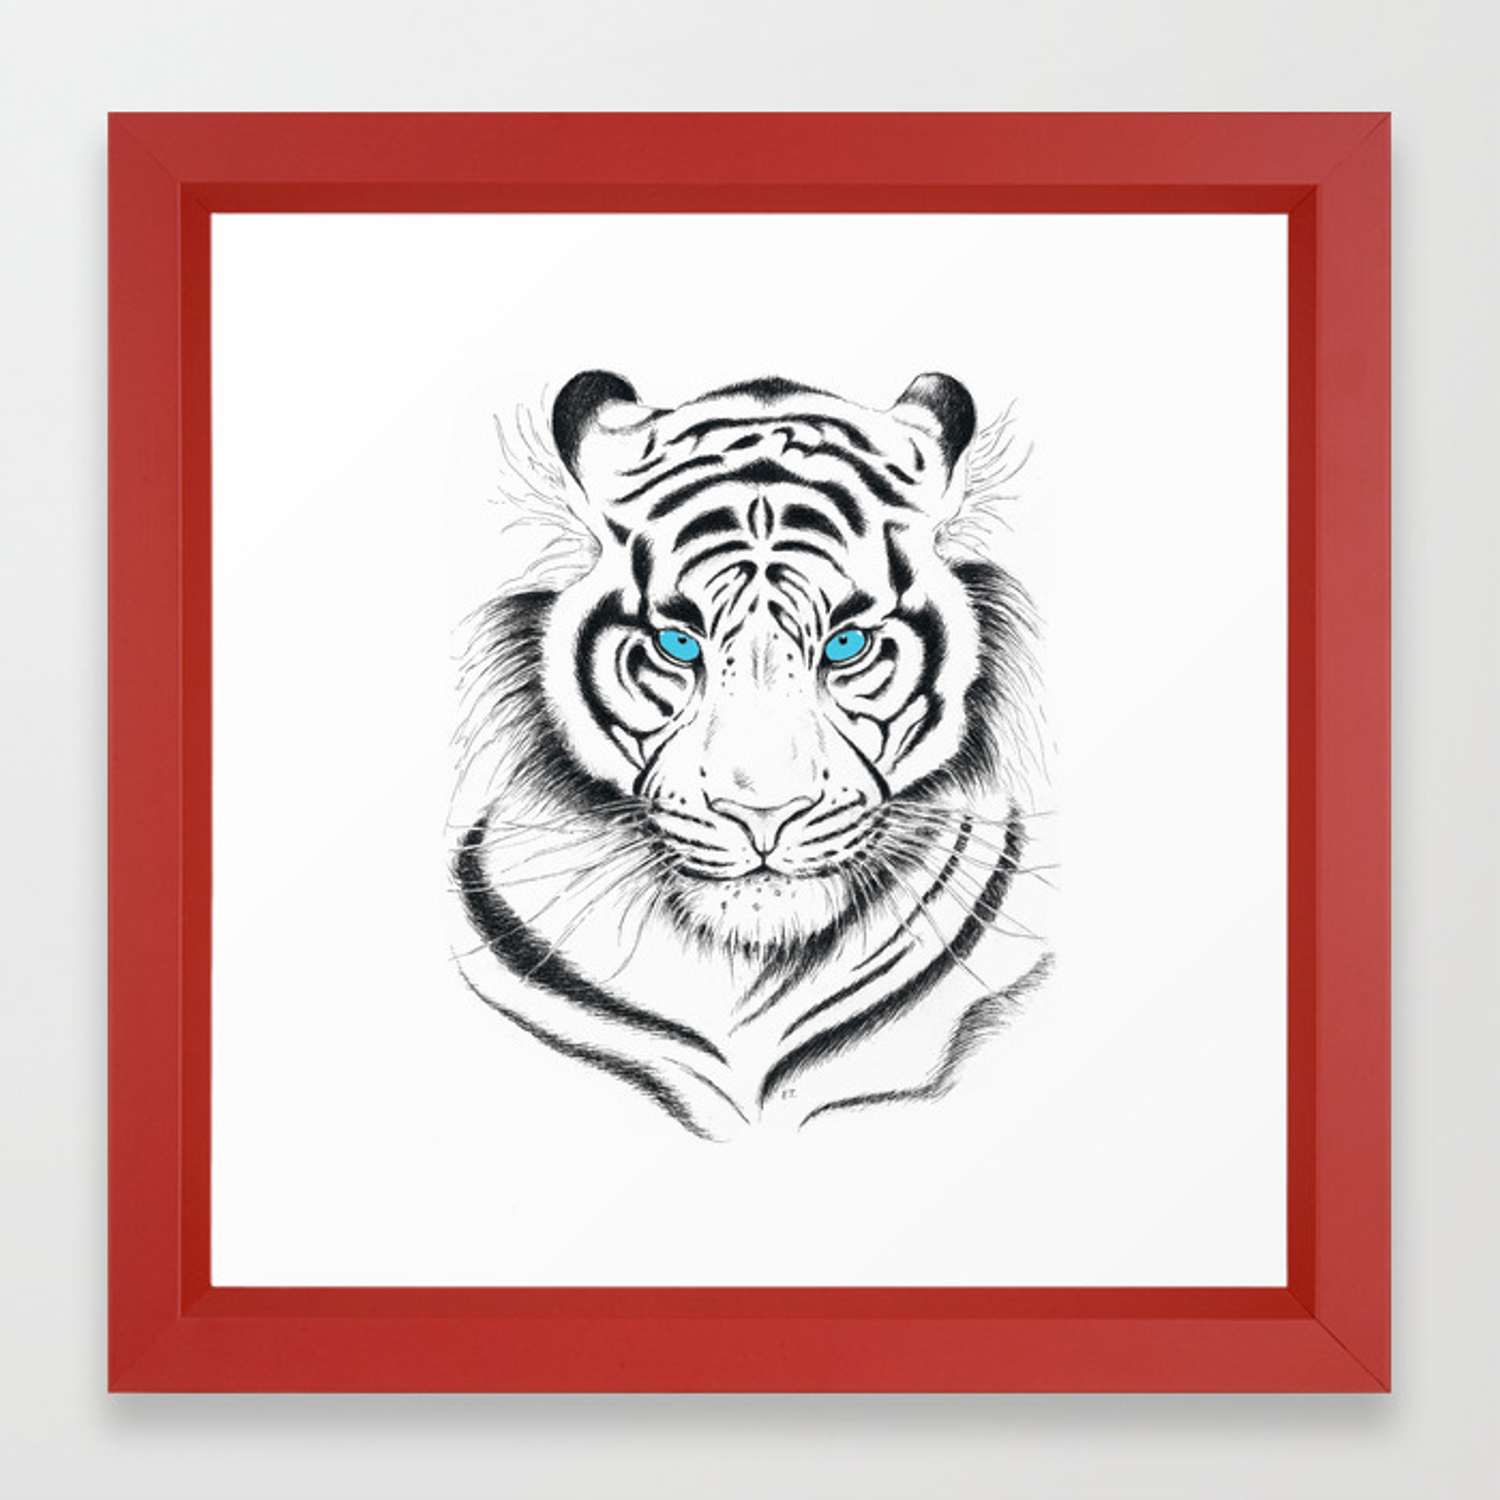 White begal tiger with blue eyes clipart clip art freeuse stock White Bengal tiger Blue Eyes Ink Art Framed Art Print clip art freeuse stock